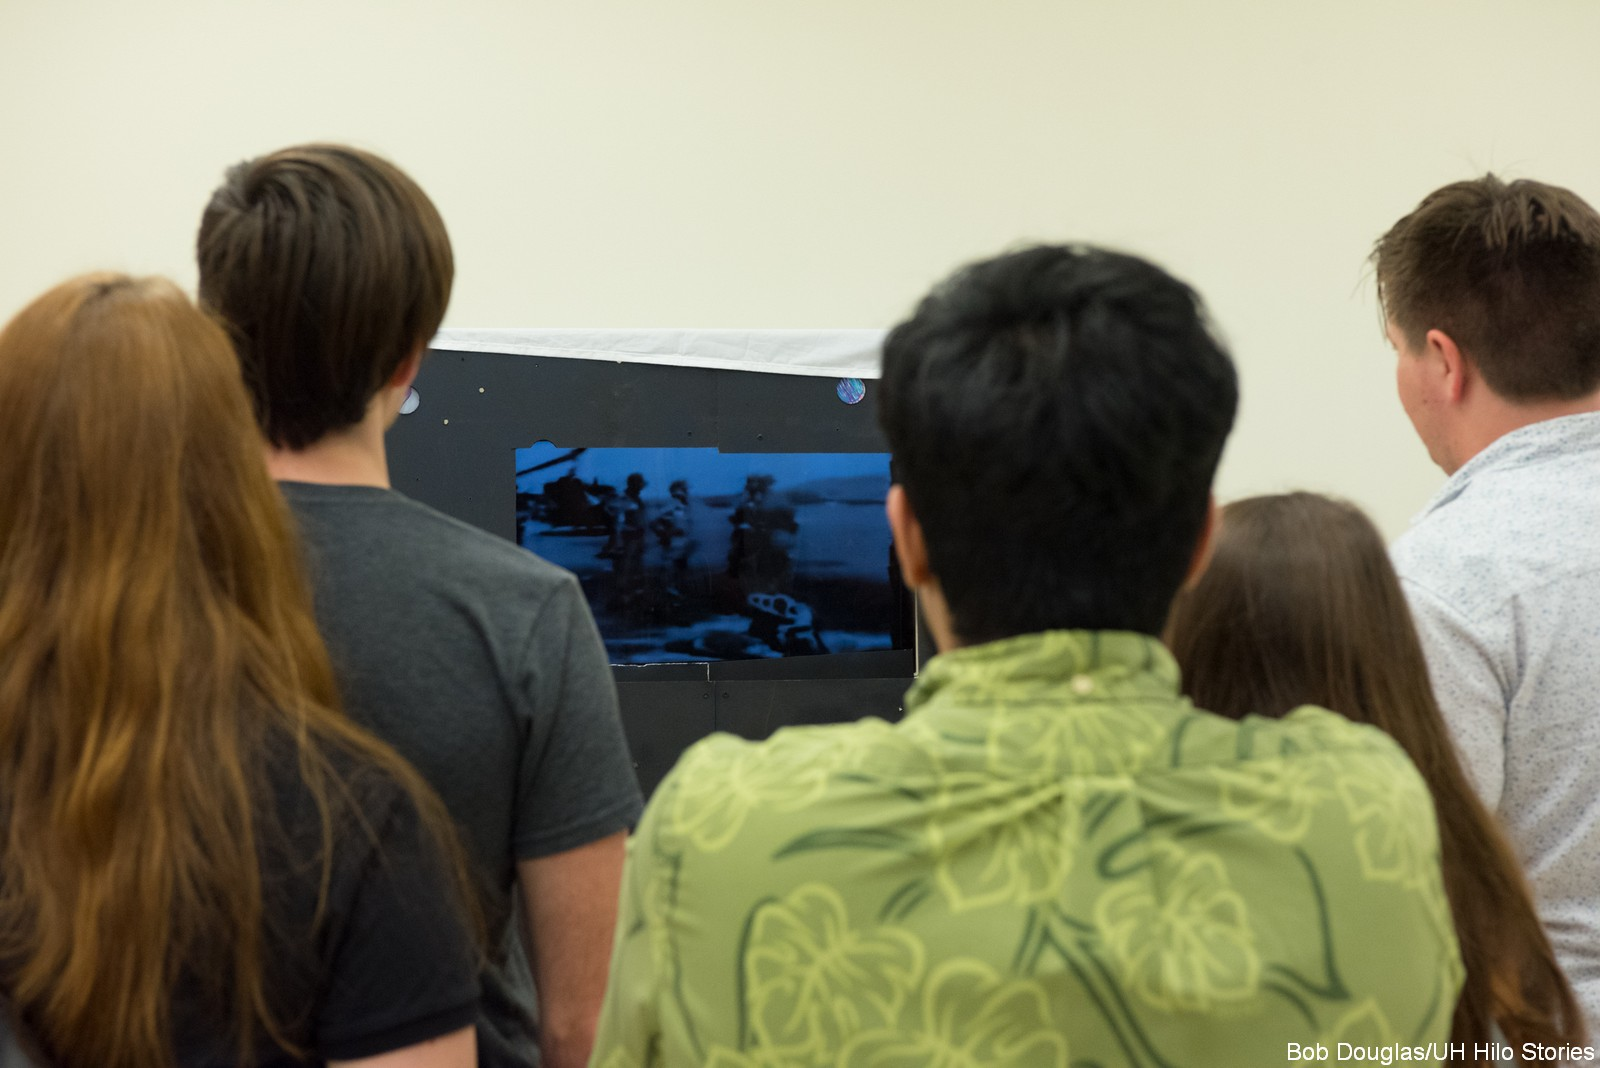 Group of students watch a television screen.